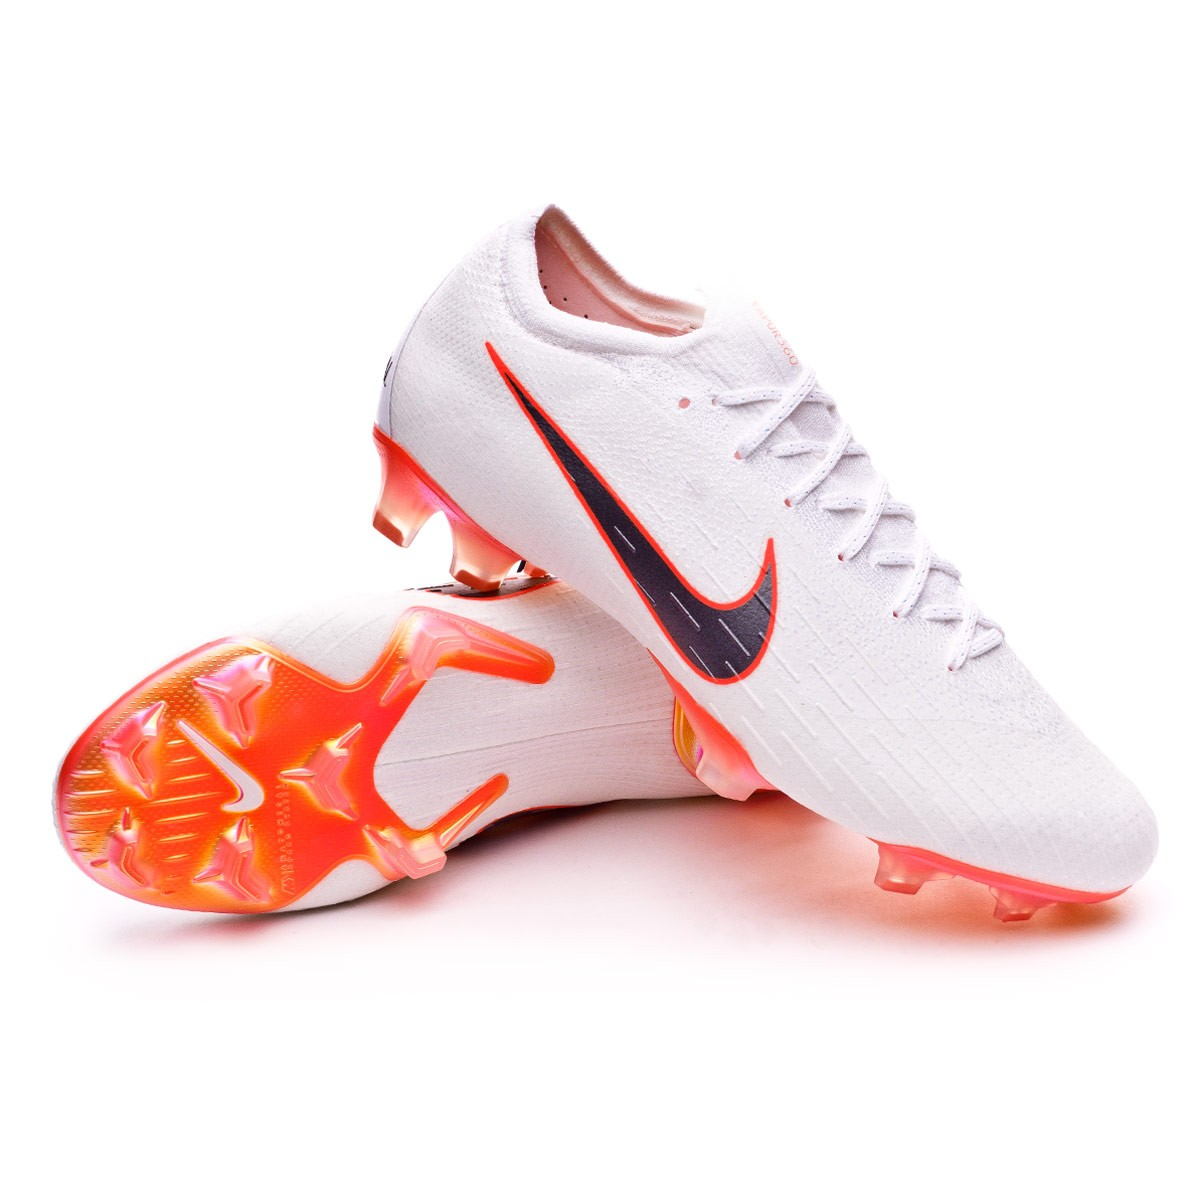 ... Bota Mercurial Vapor XII Elite FG White-Metallic cool grey-Total  orange. CATEGORY